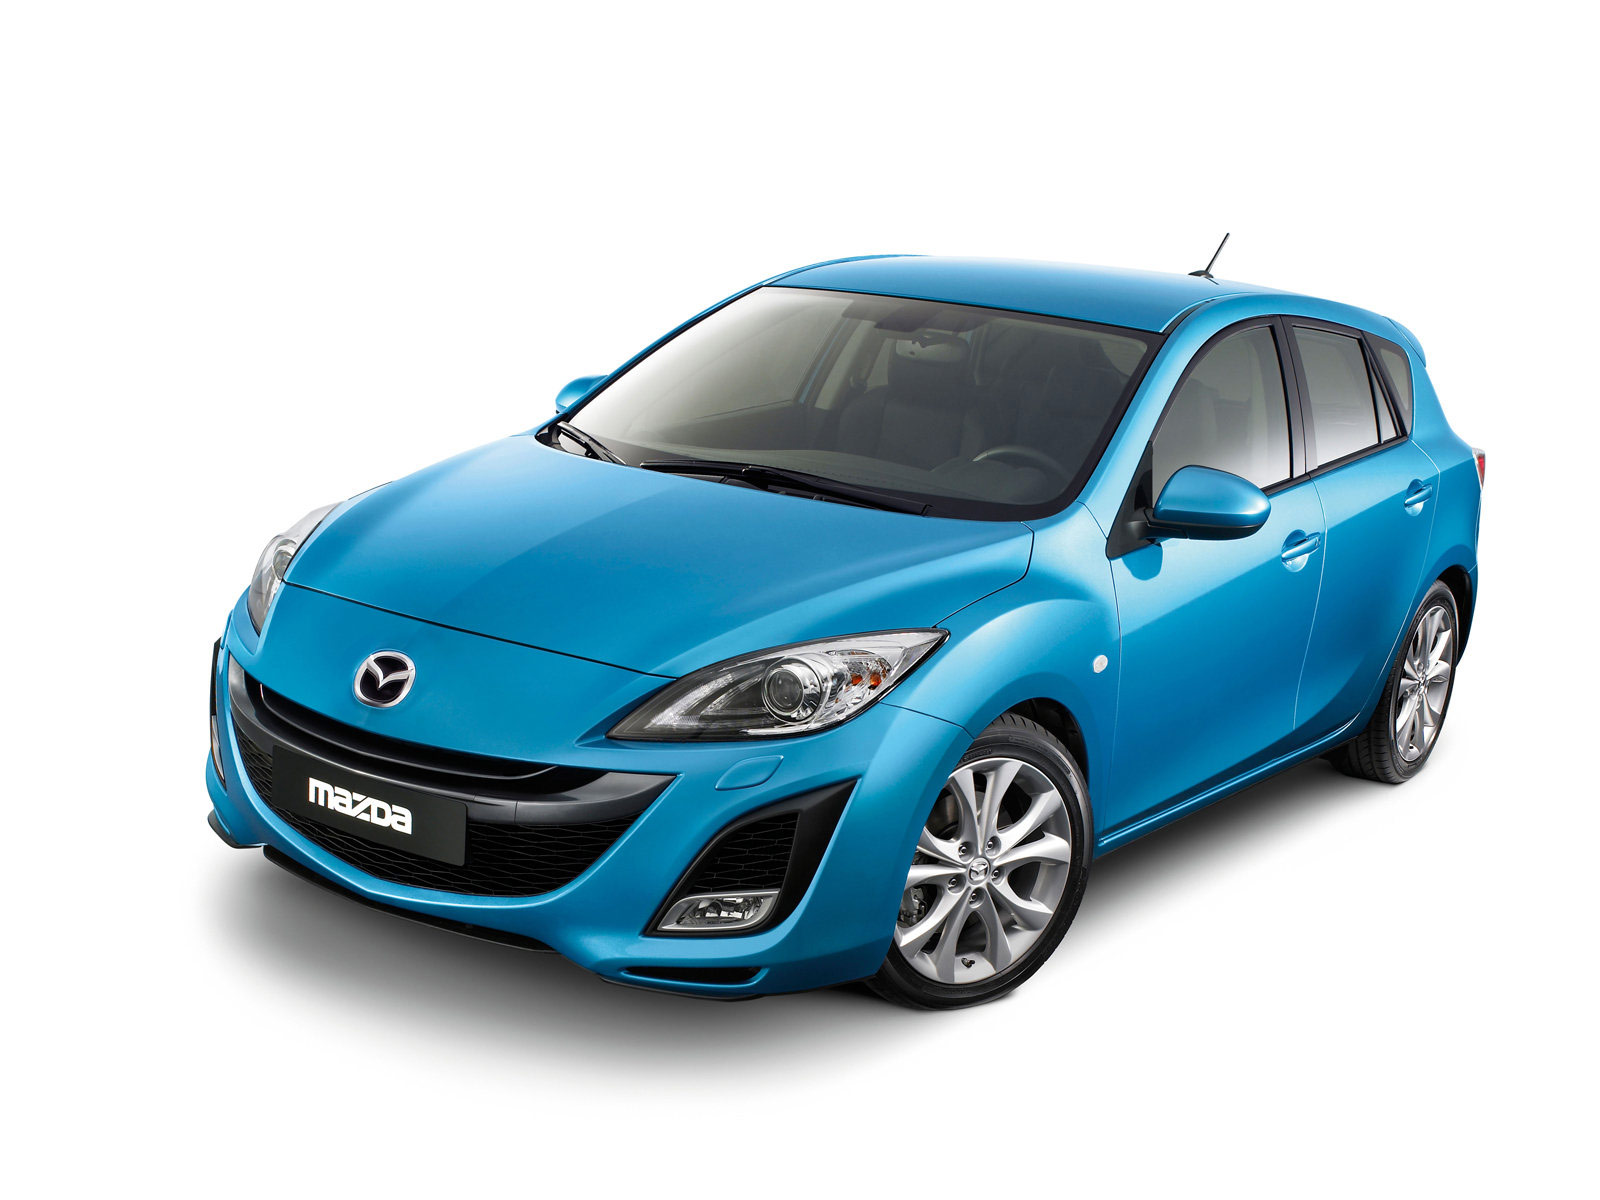 car accident lawyers info 2010 mazda 3 desktop wallpaper. Black Bedroom Furniture Sets. Home Design Ideas